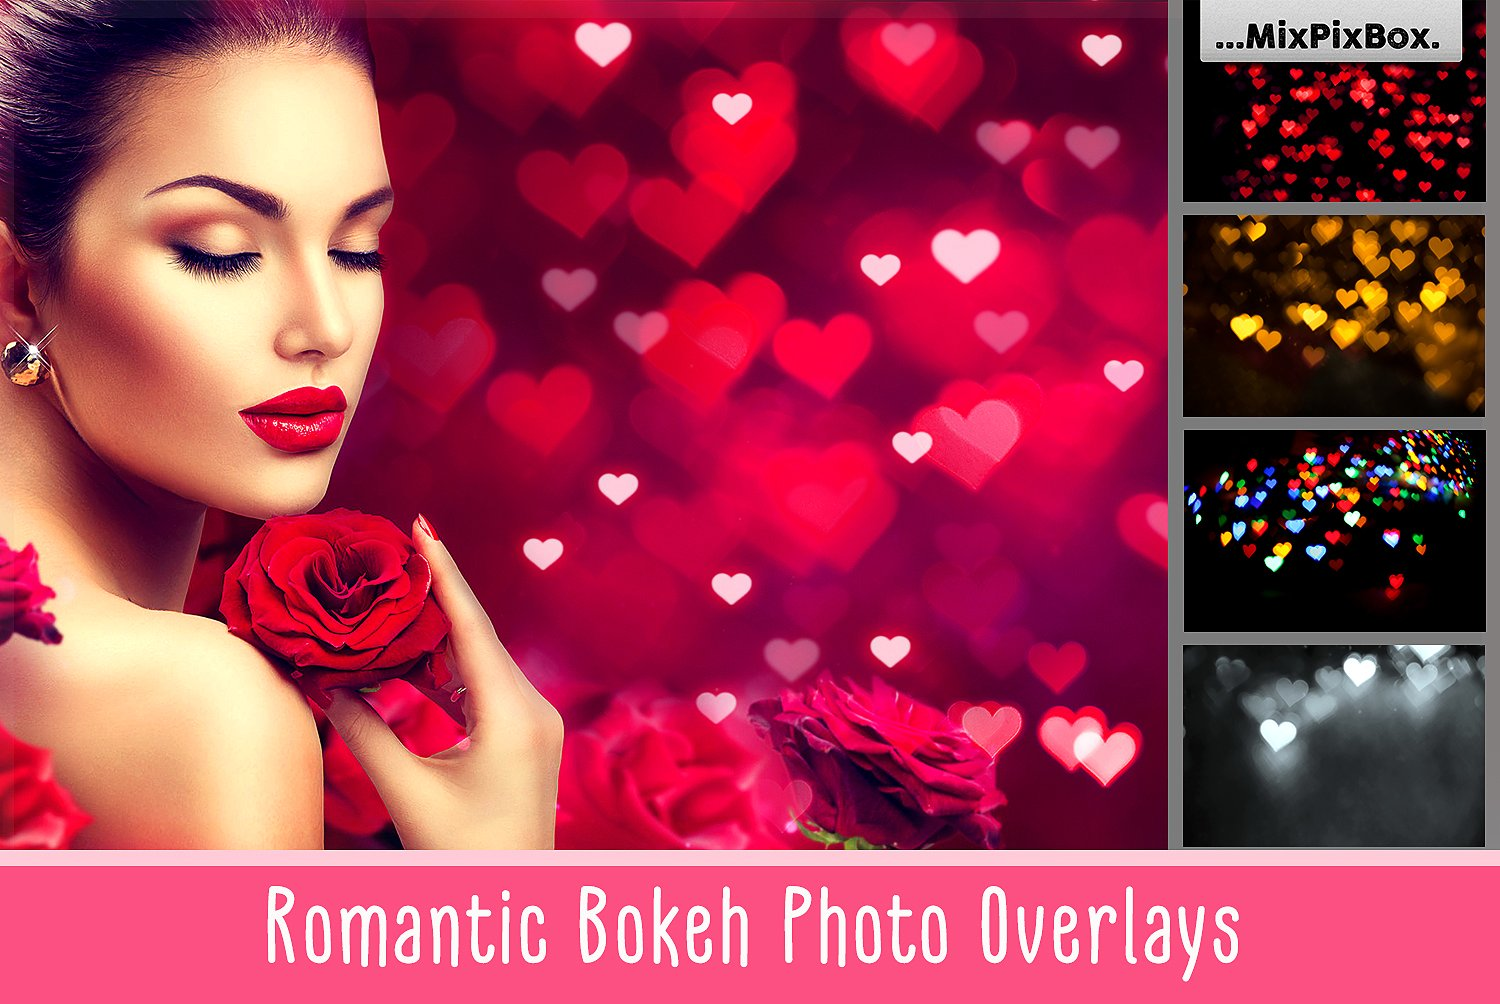 100+ Free Heart Background Vectors, Photos and PSD files: Make your website lovely - cover 2